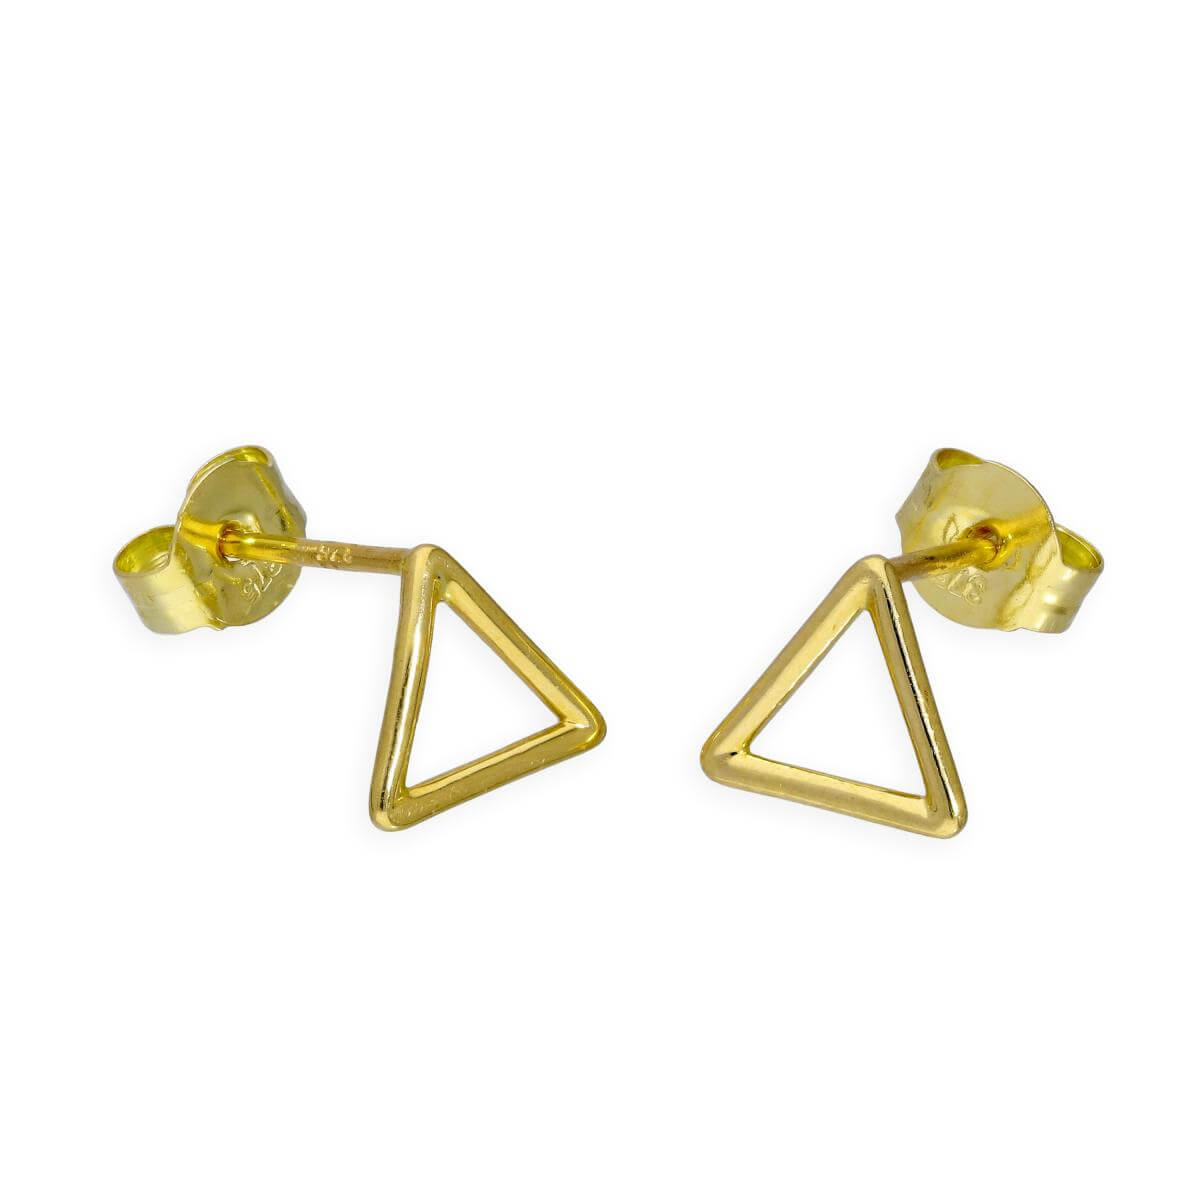 9ct Gold Open Triangle Stud Earrings